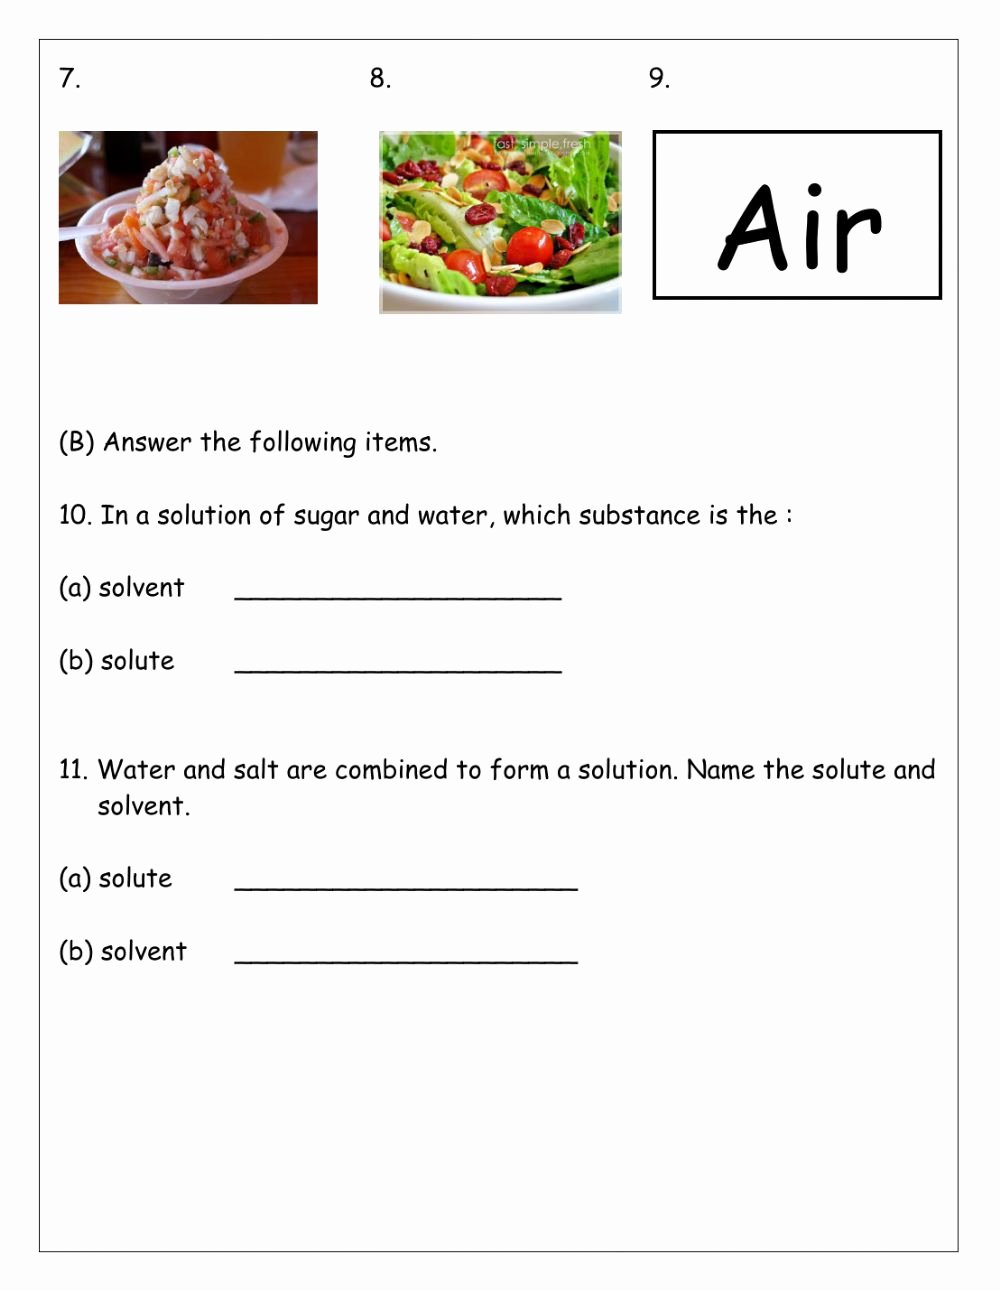 Mixtures and solutions Worksheet Answers Lovely Mixtures and solution Interactive Worksheet